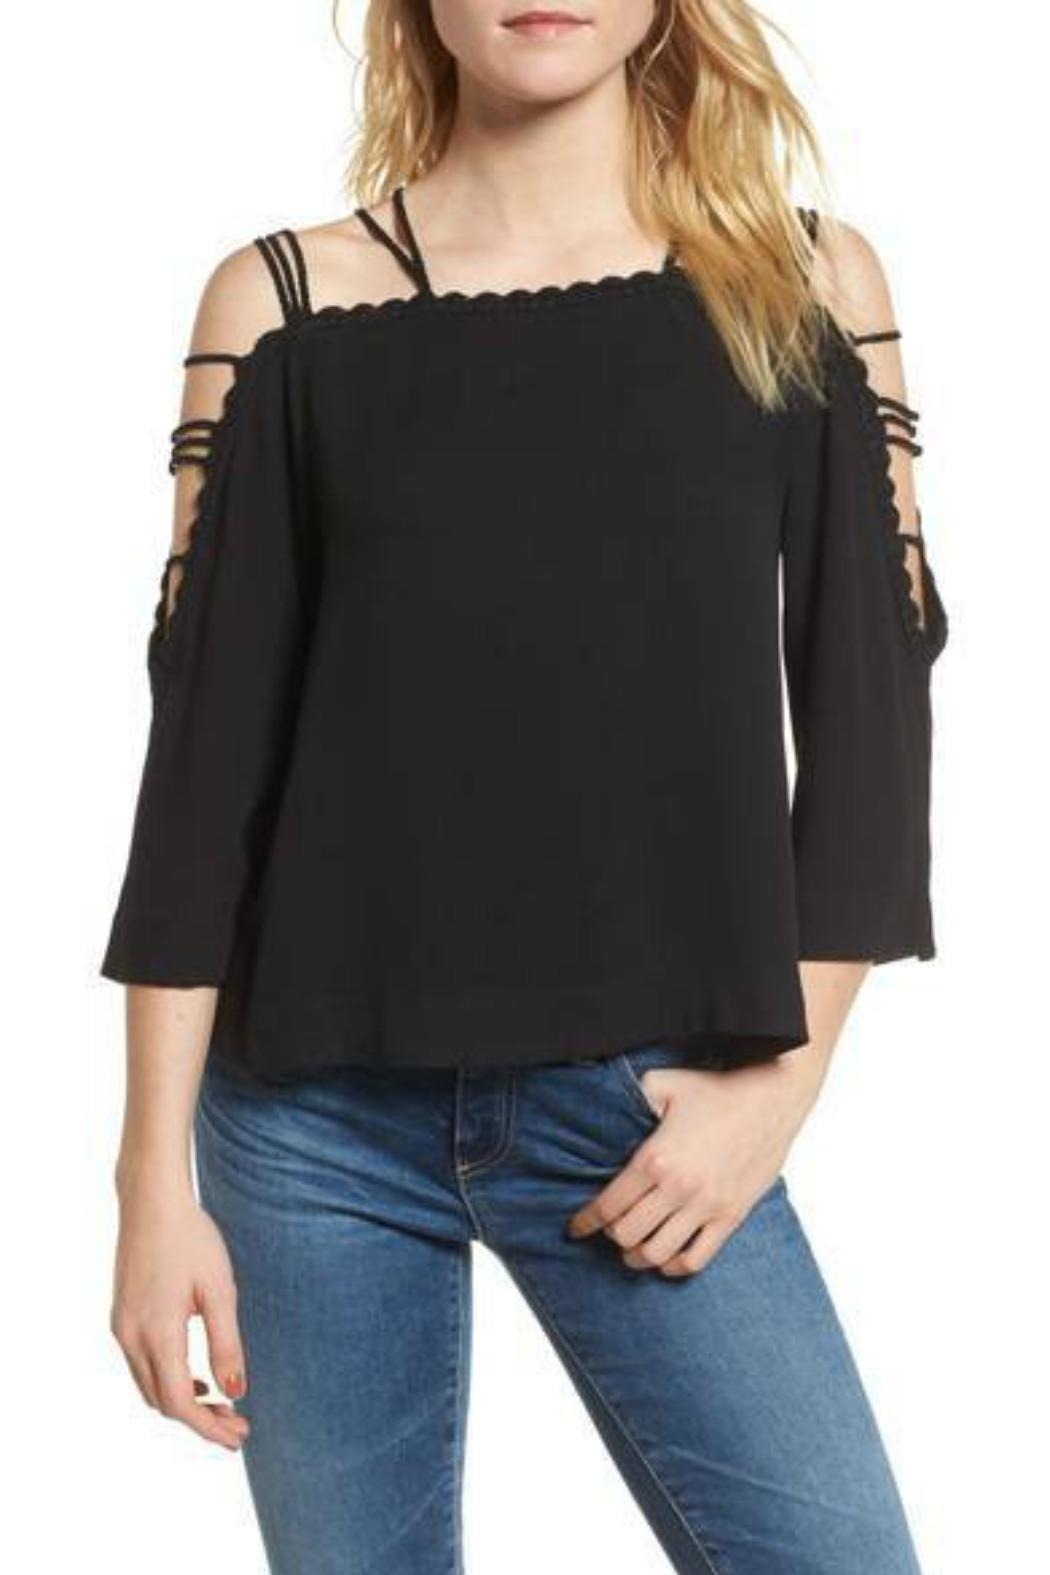 Ella Moss Stella Blouse - Front Cropped Image